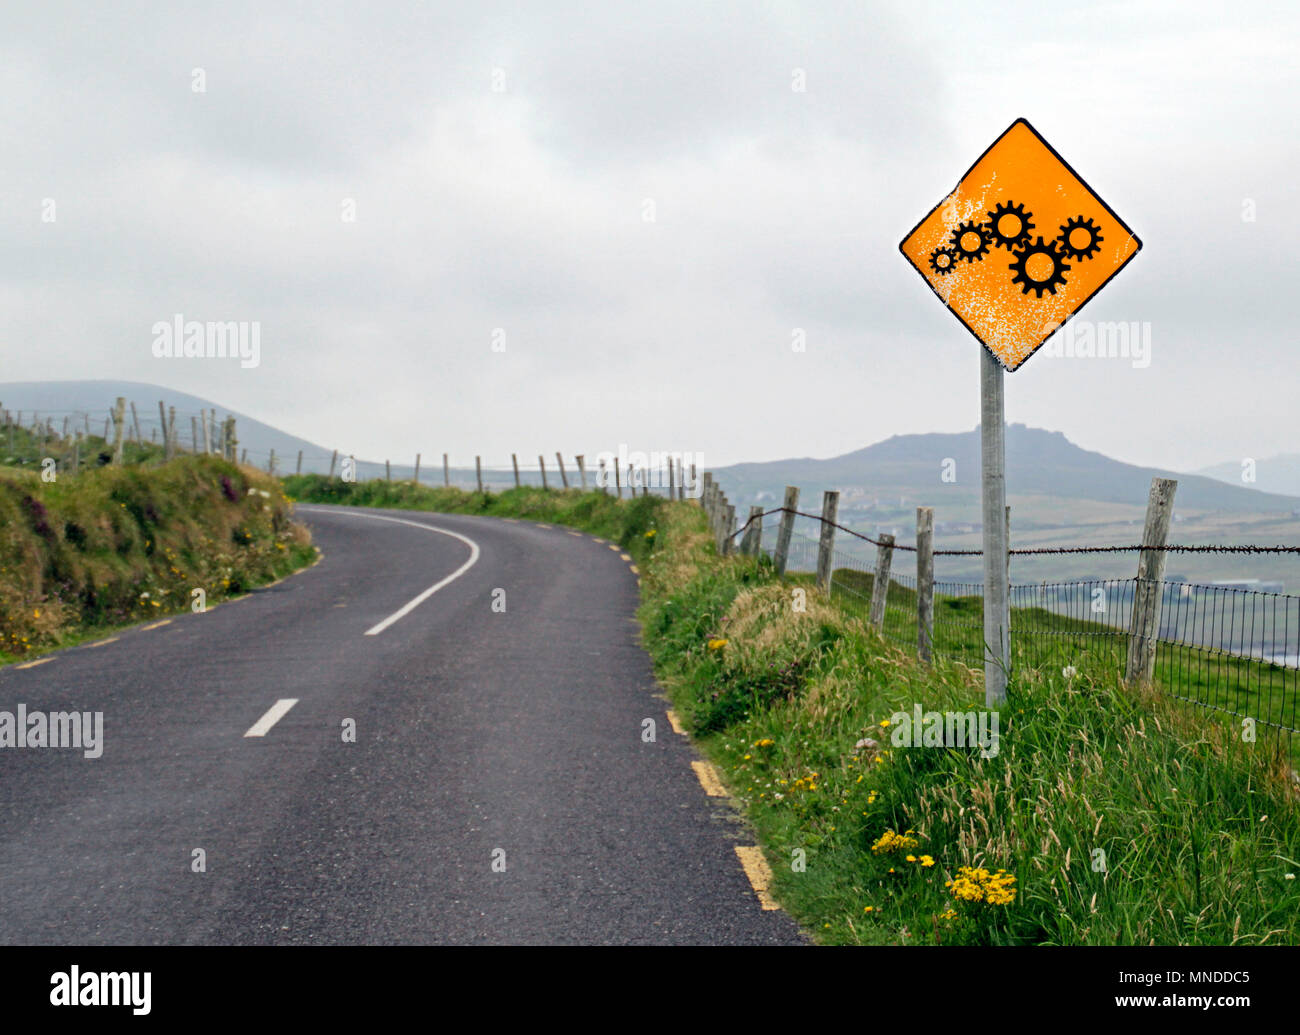 Road to process integration - Stock Image